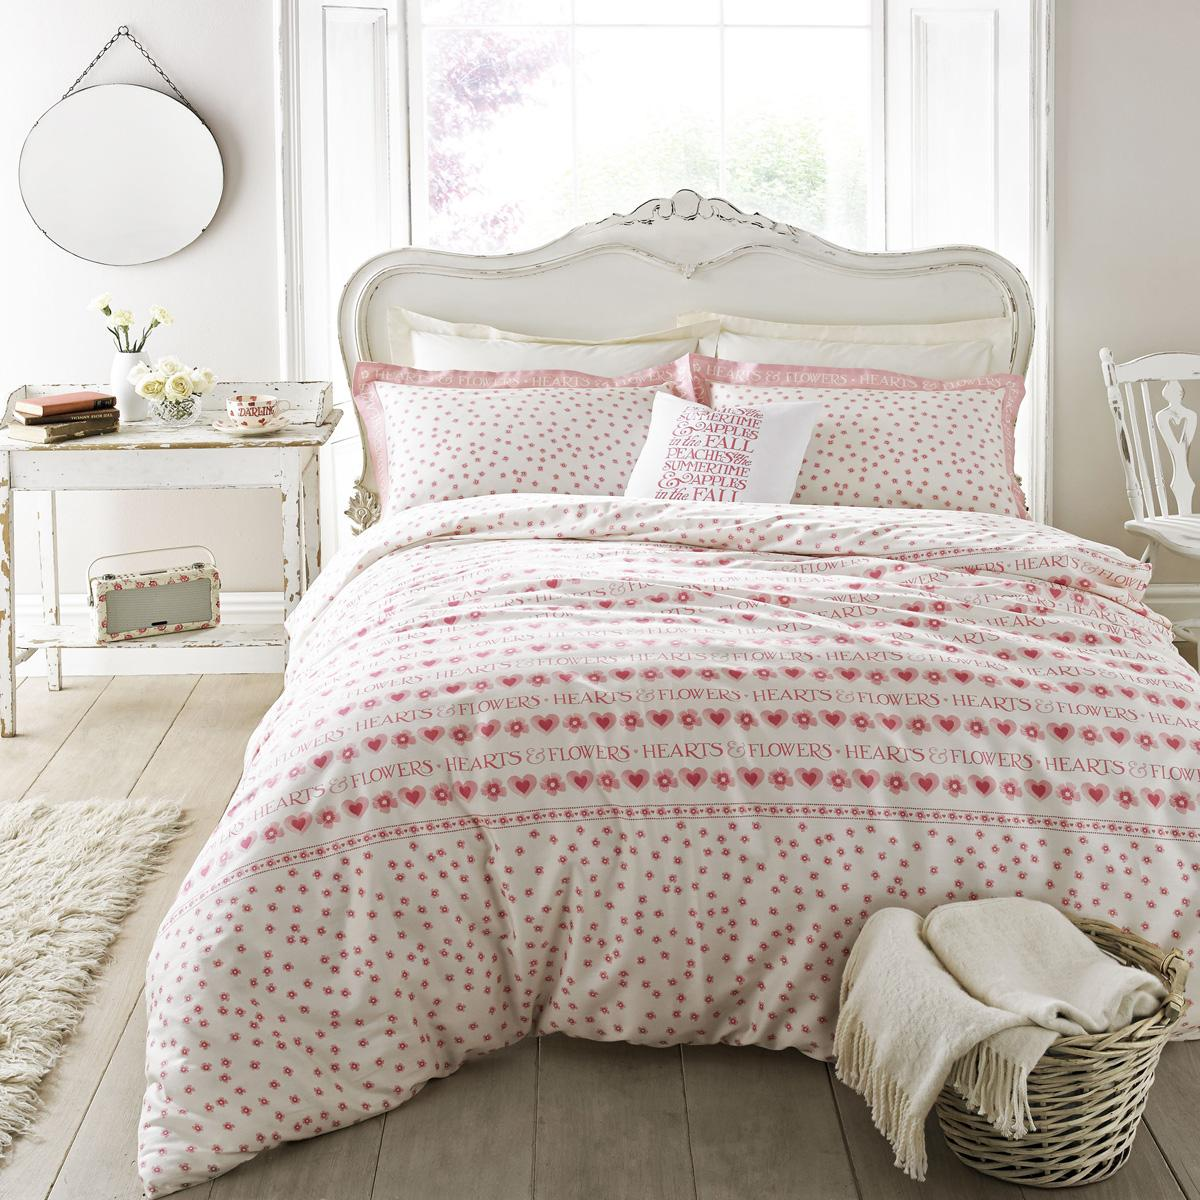 Pink Emma Bridgewater Hearts and Flowers Bedding